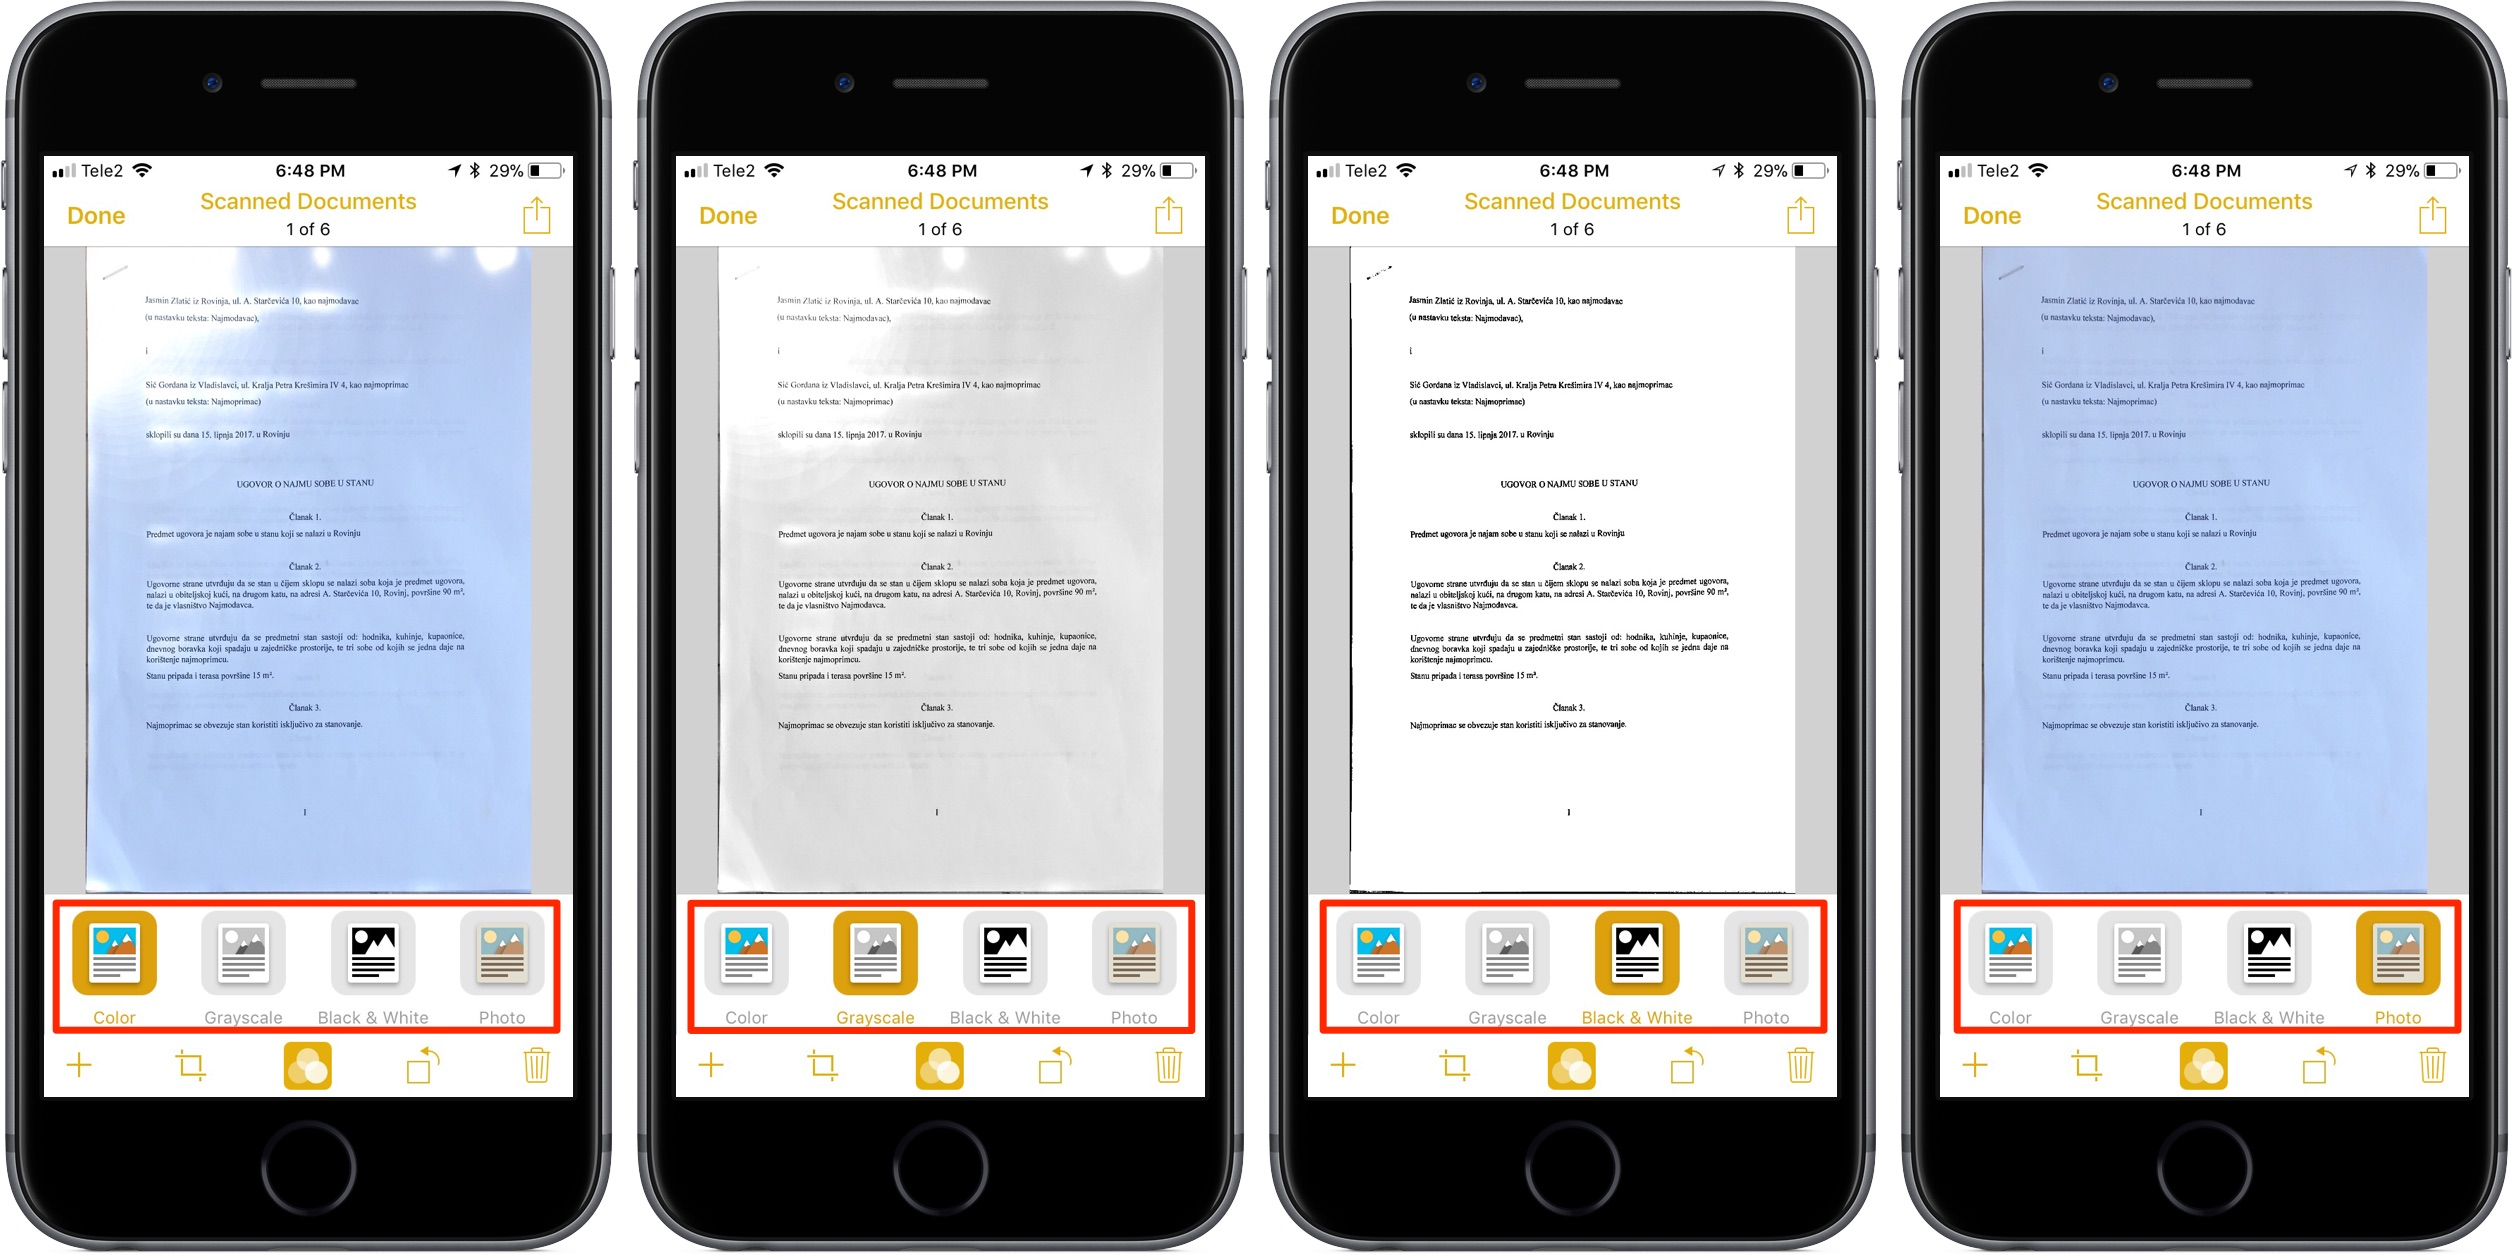 How To Scan Documents In IOS Notes App - Invoice scanning app